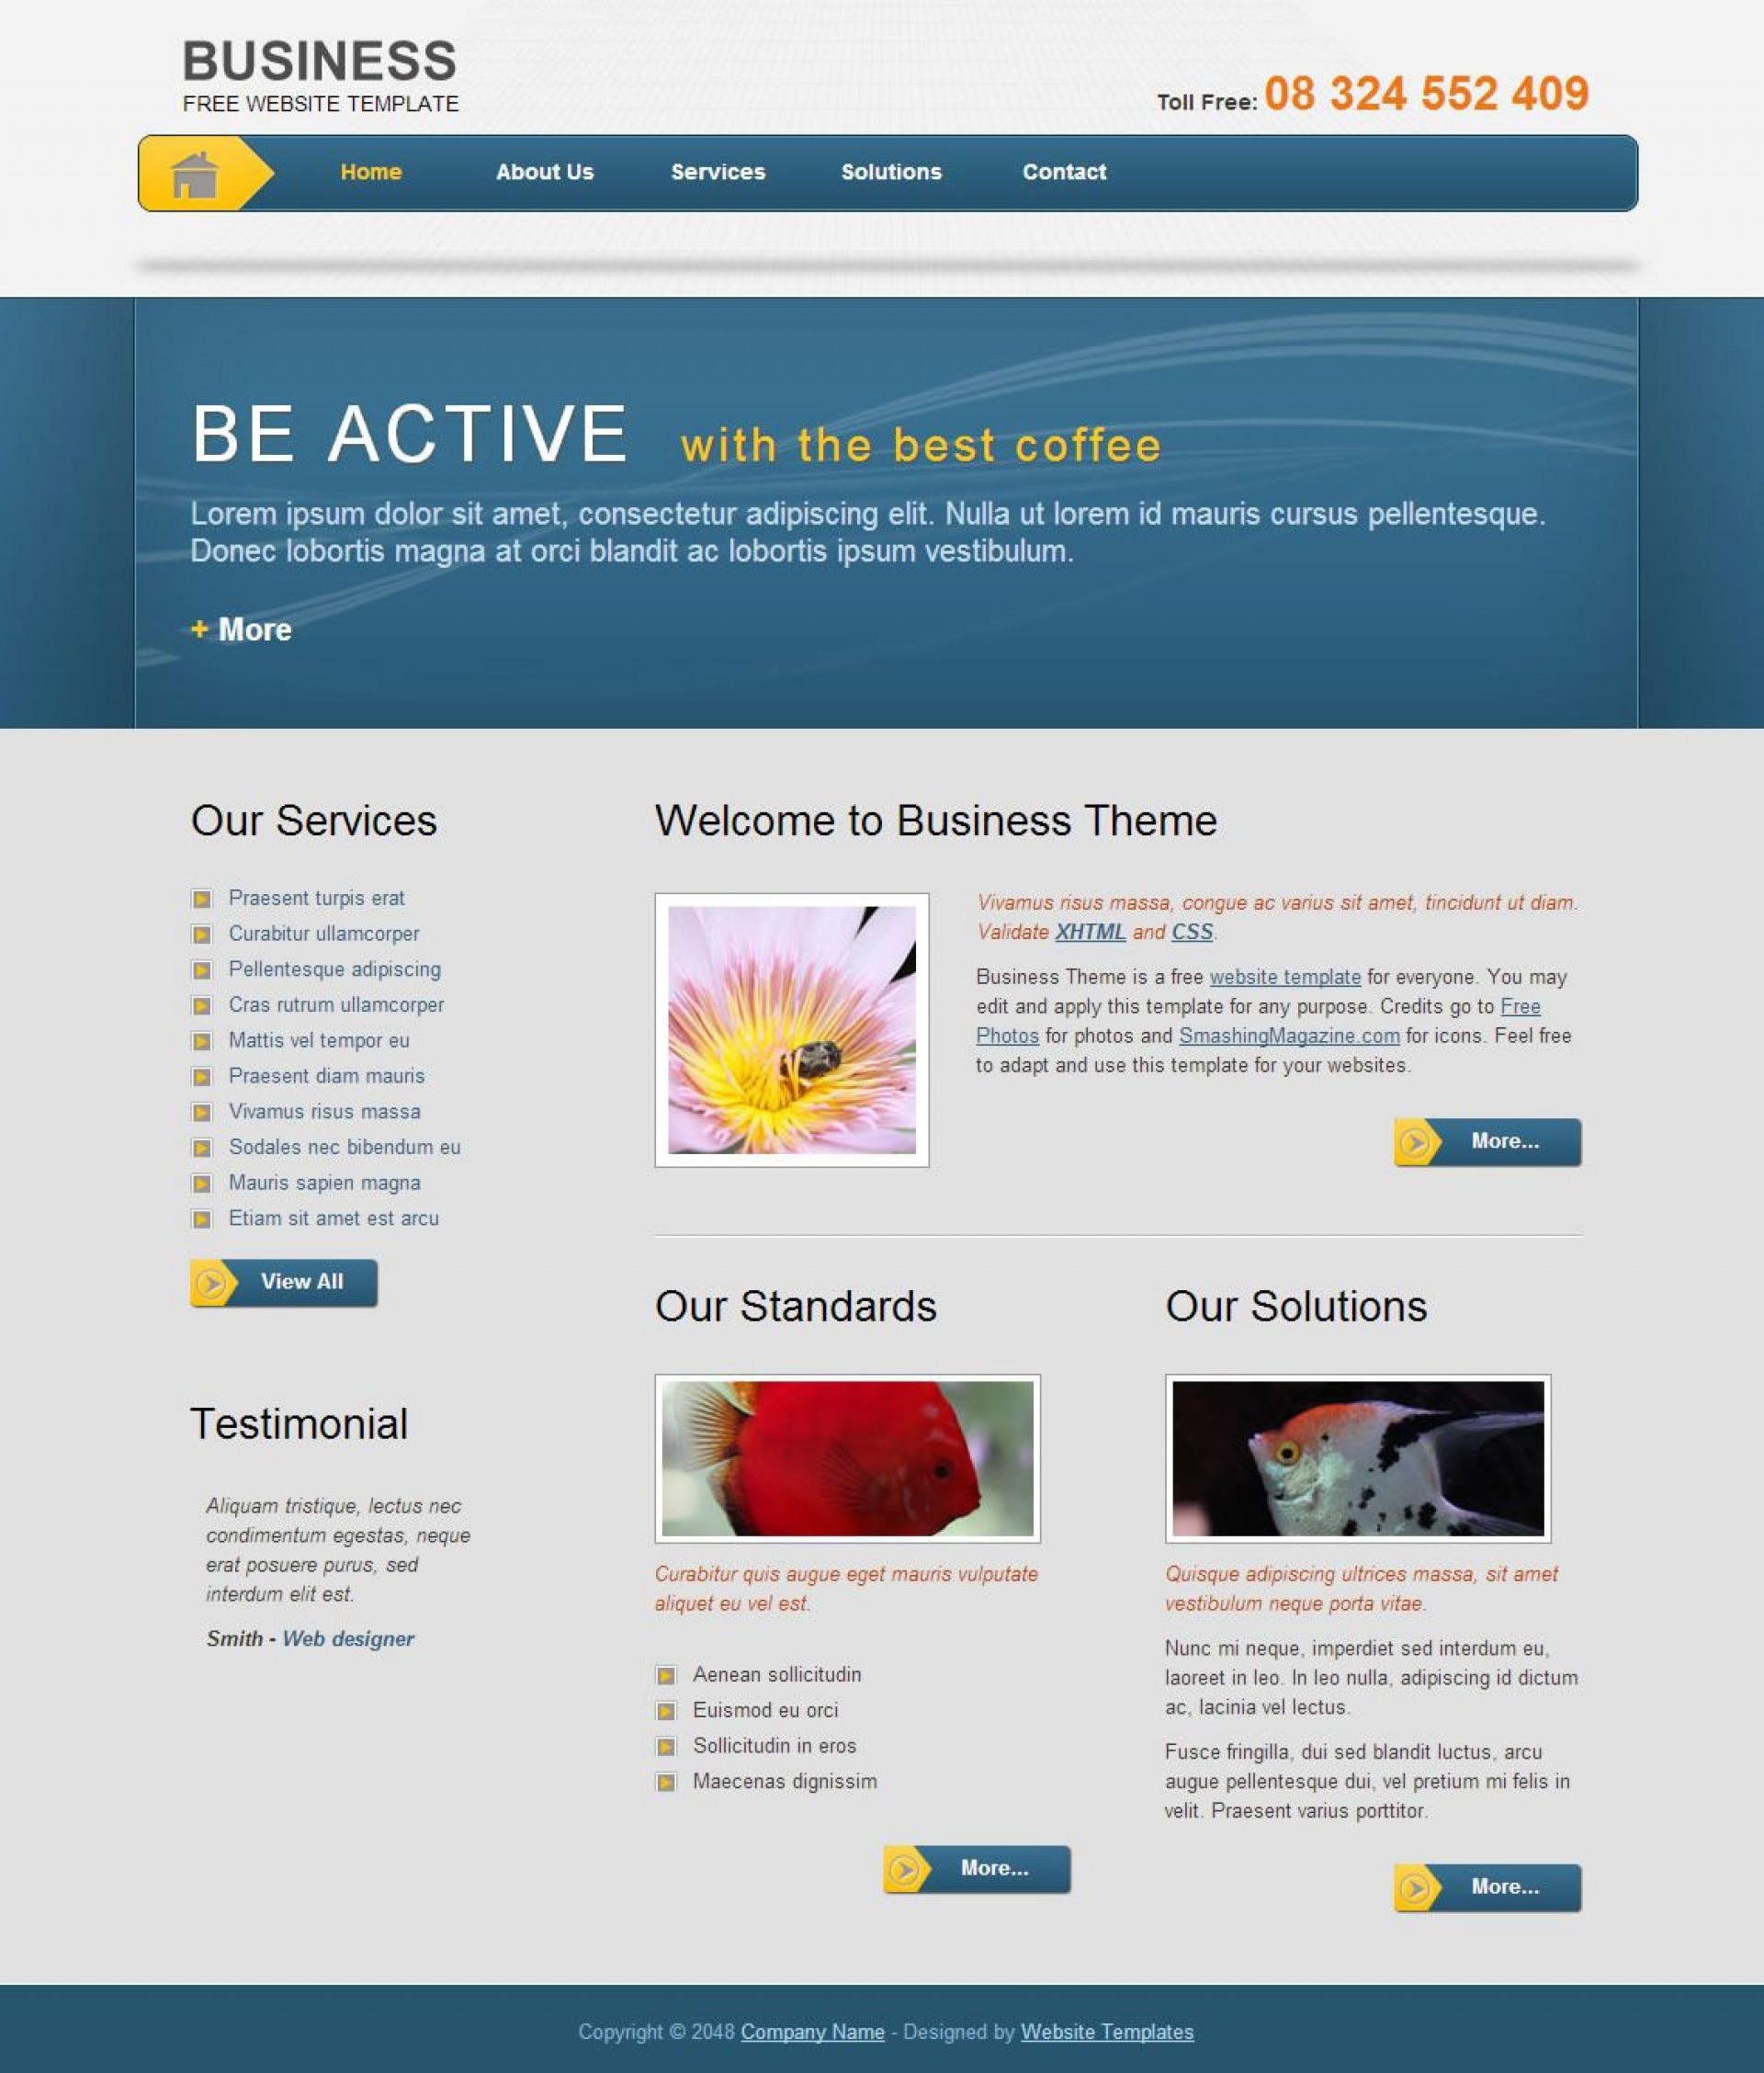 000 Remarkable Busines Html Template Free Download With Cs Highest Clarity  Css Responsive Website1920